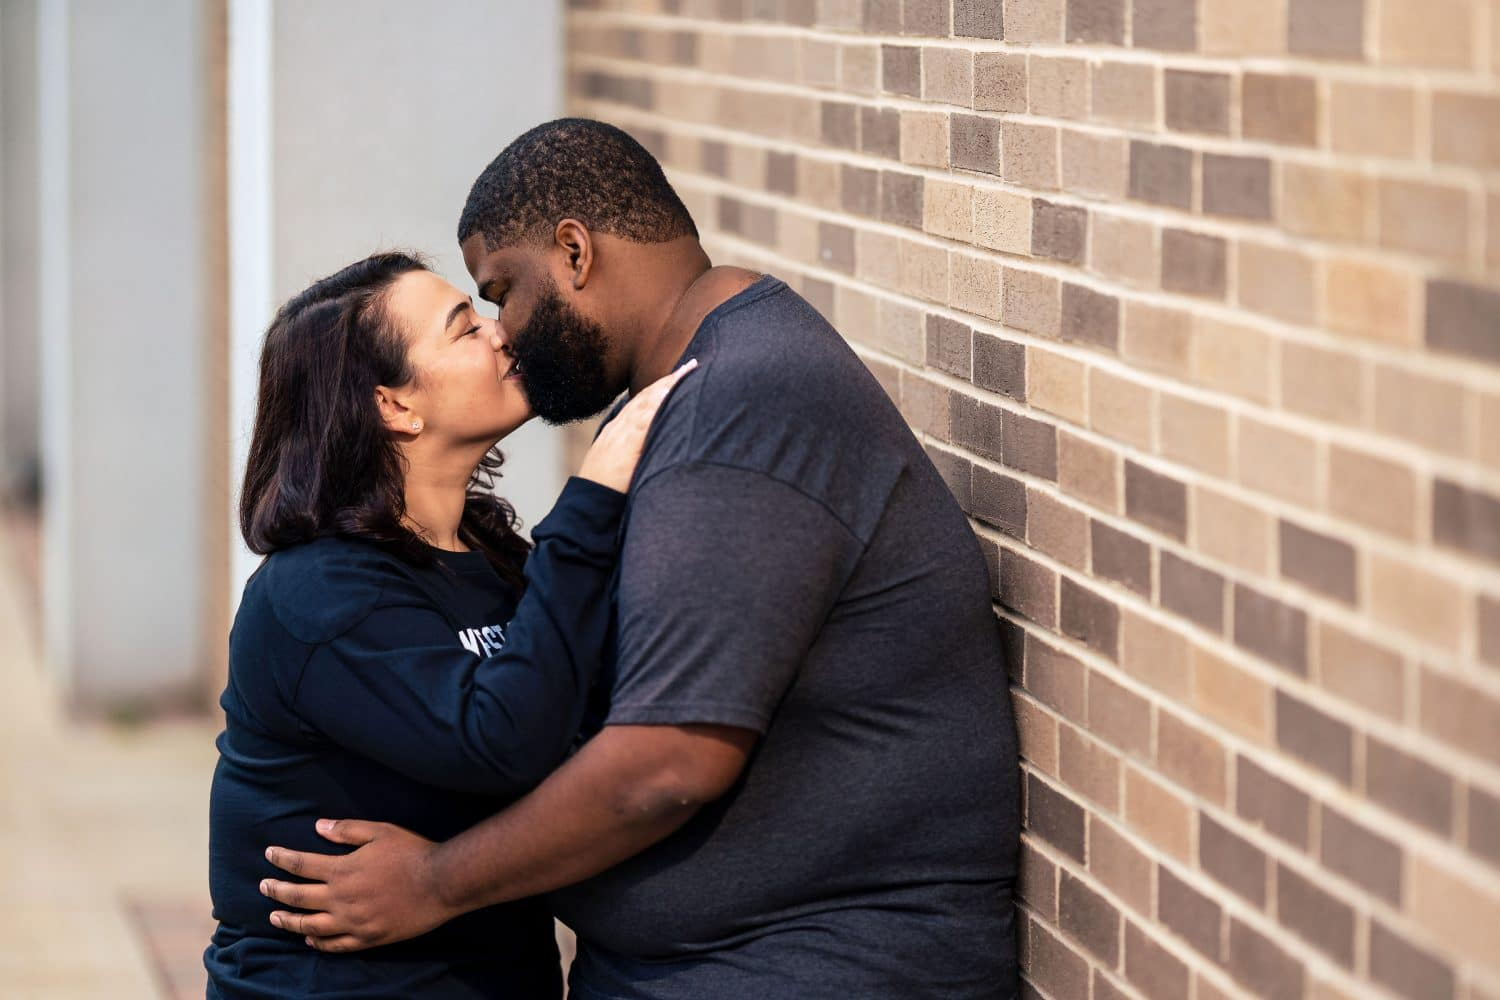 Couple kissing during West Chester University Engagement Session Shot By John Ryan